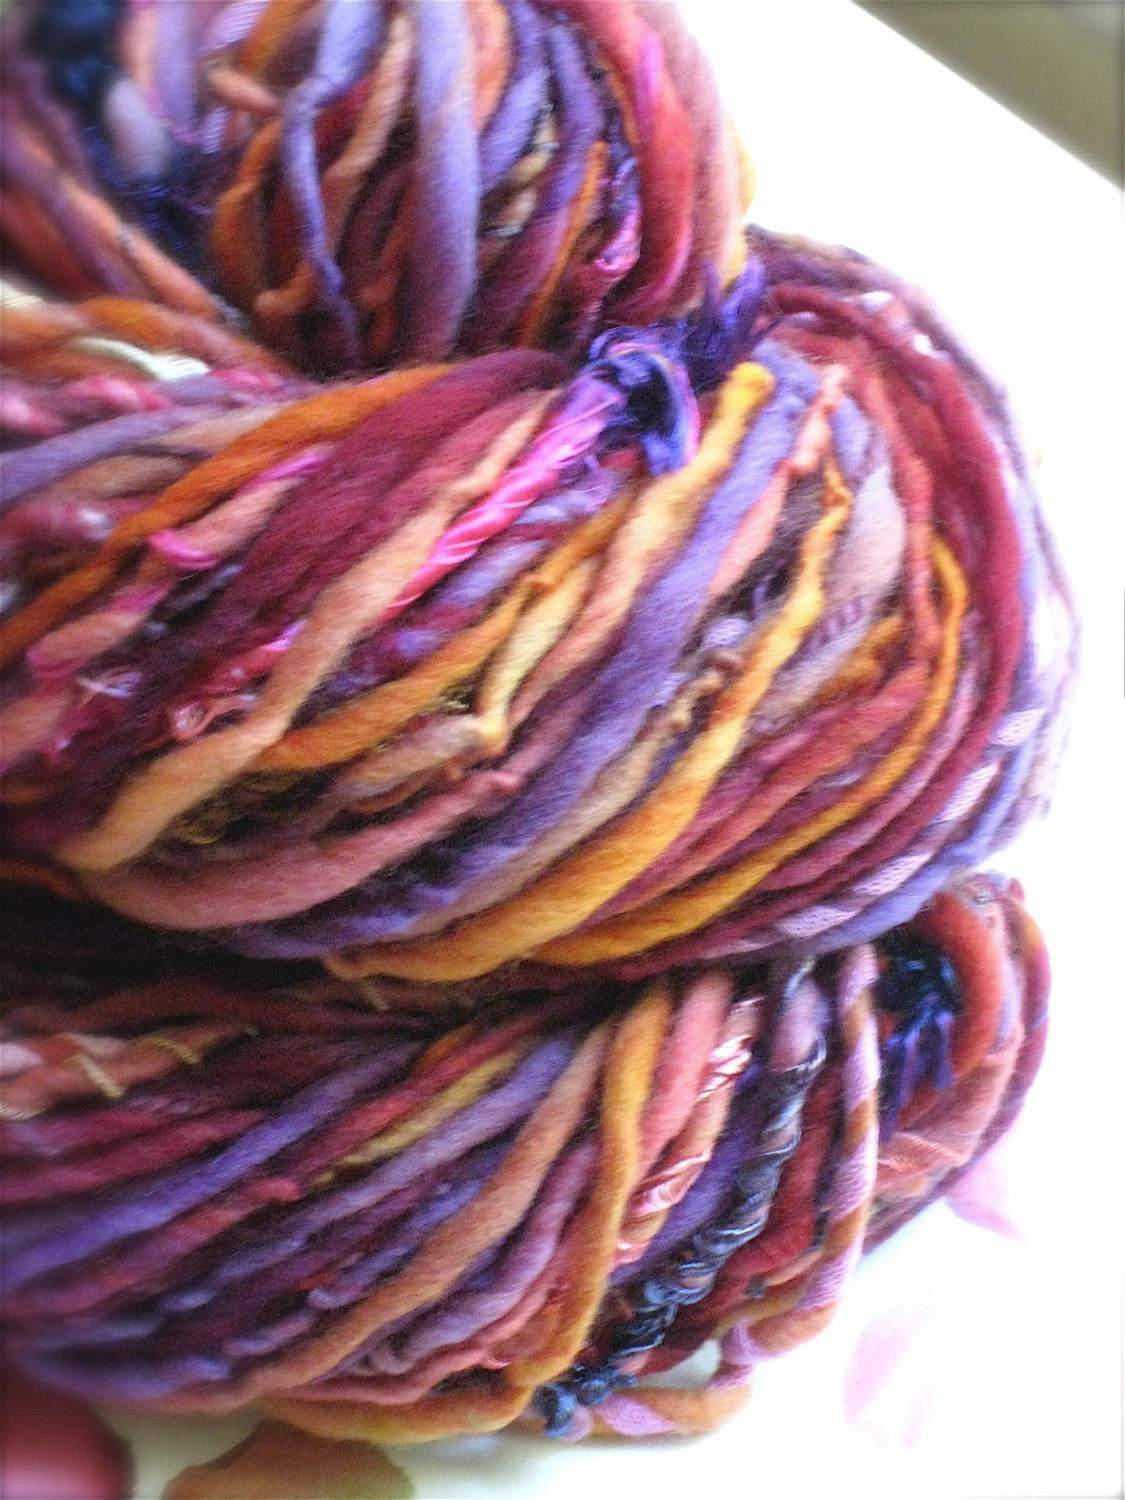 SUGAR PLUM -Handspun and Handpainted Gypsy Yarn by Pancake and Lulu